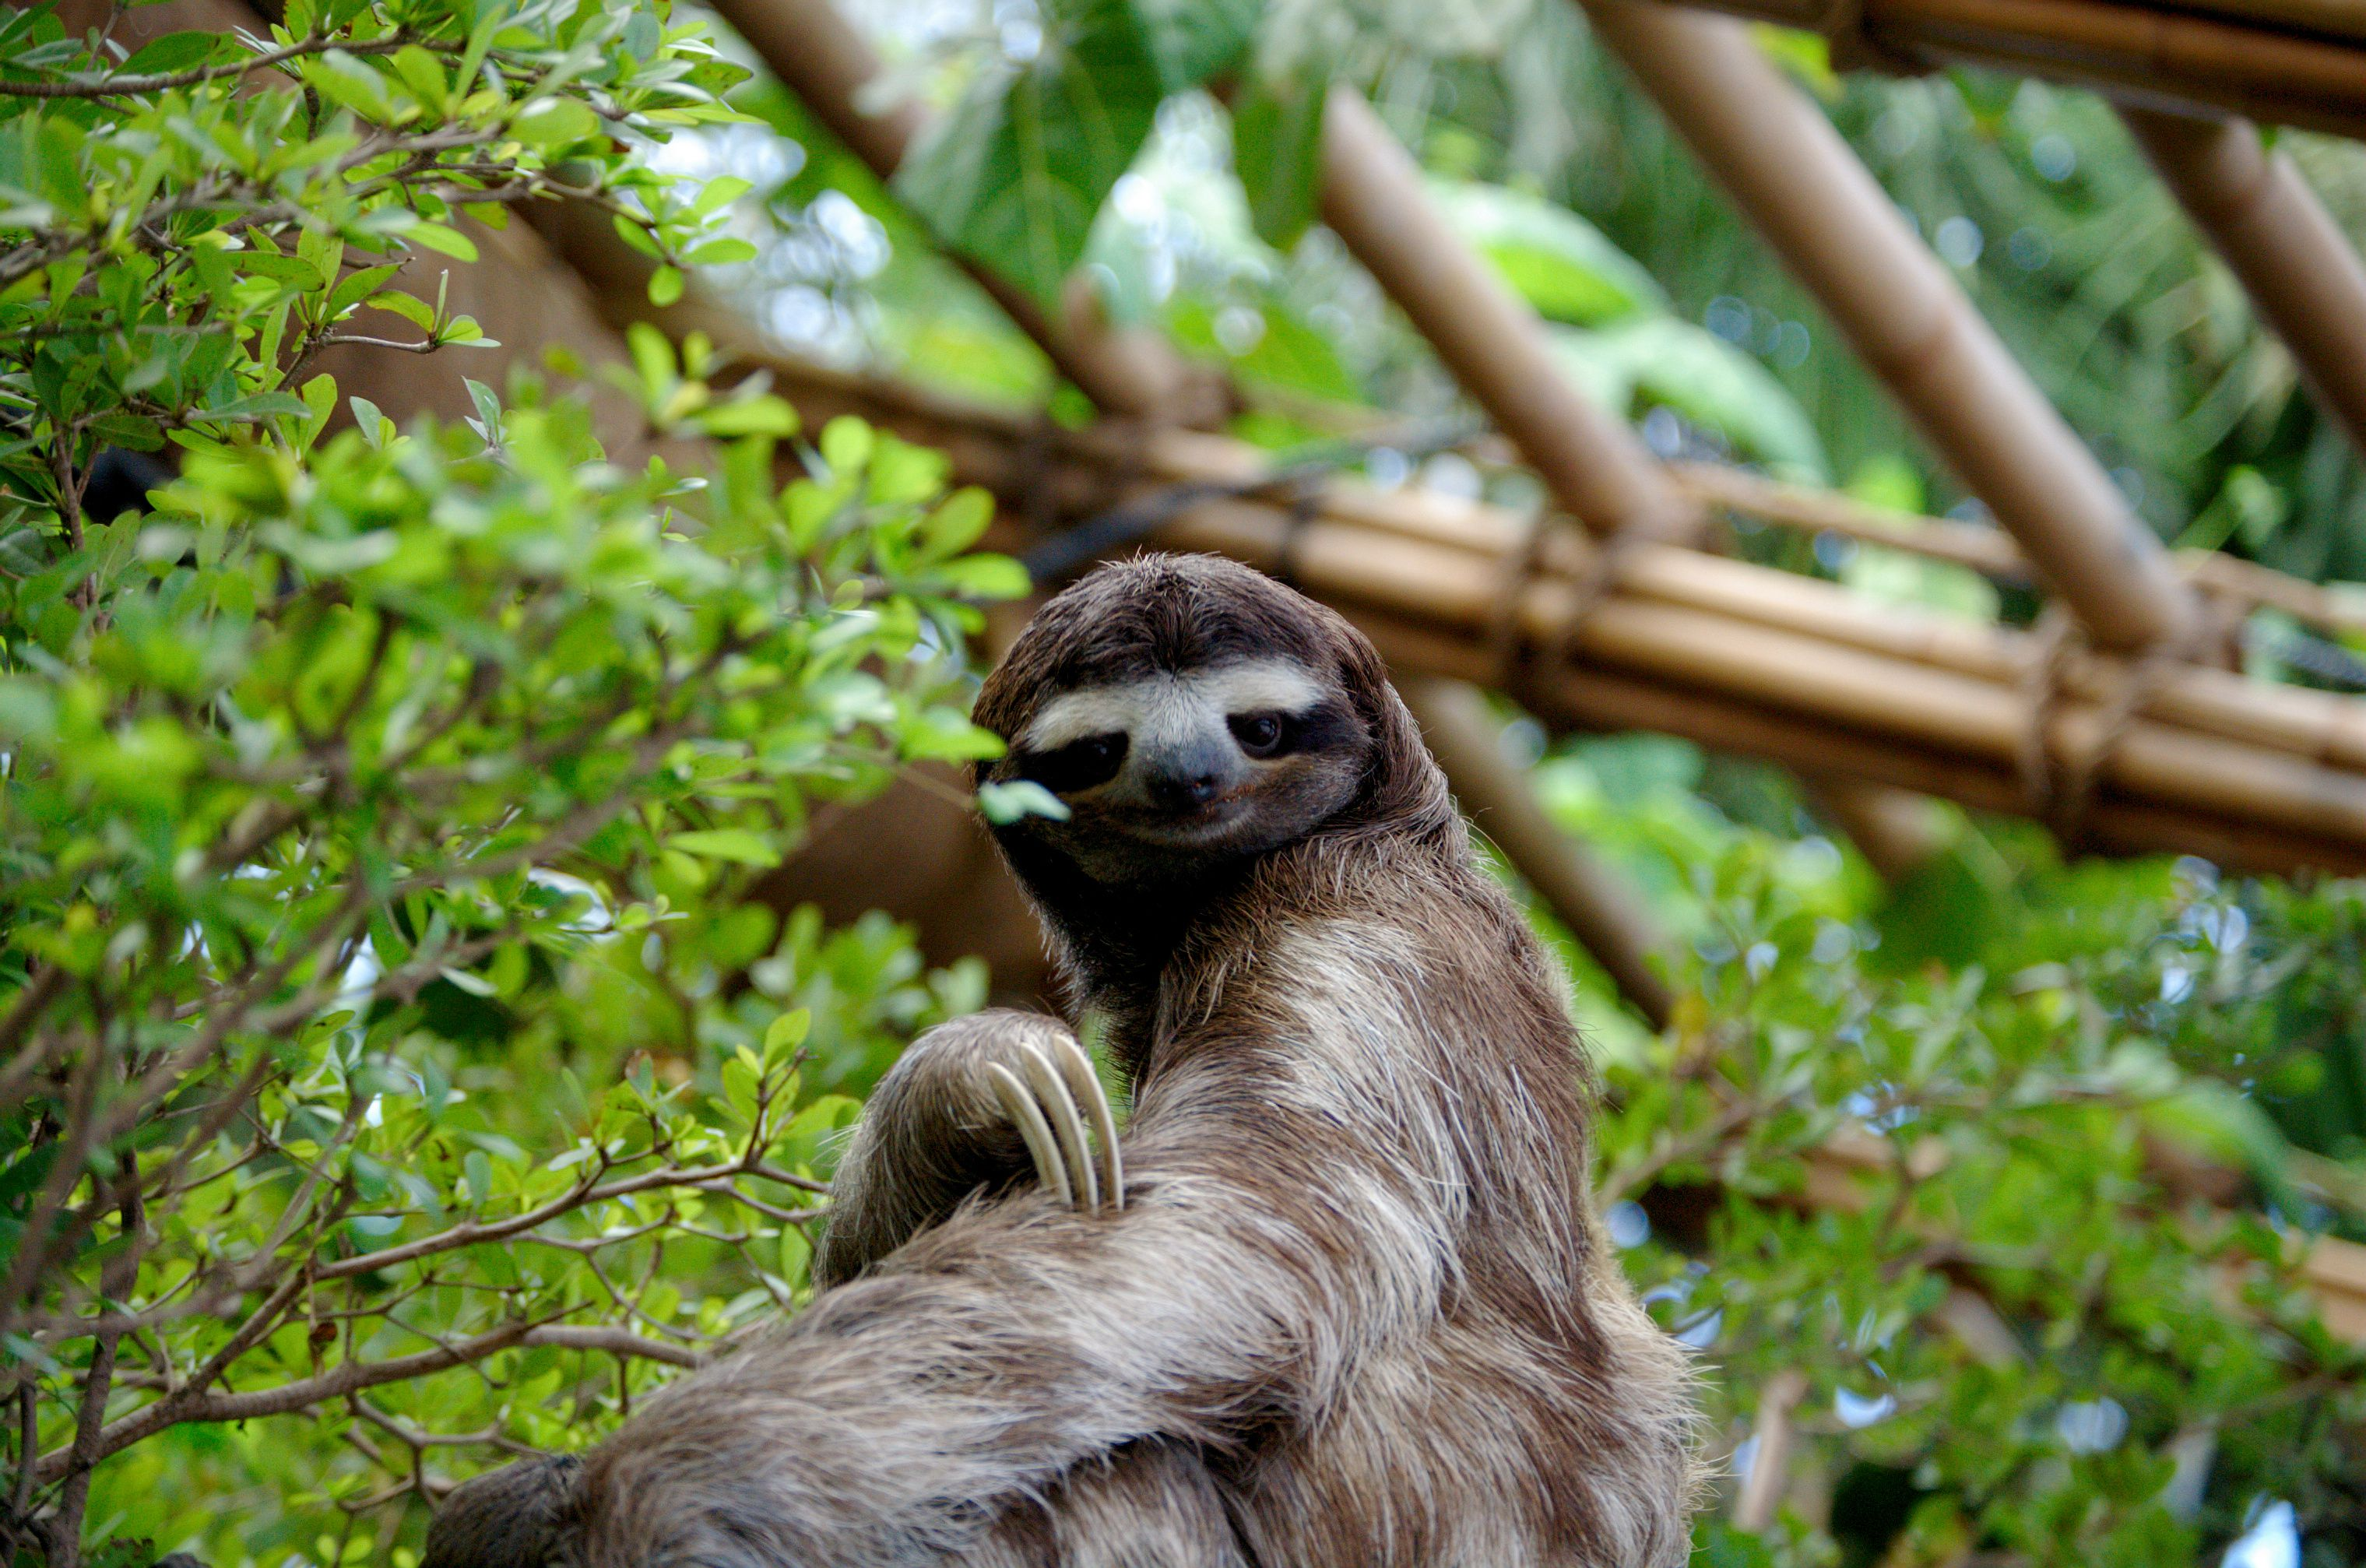 Sloths spend most of their time sleeping